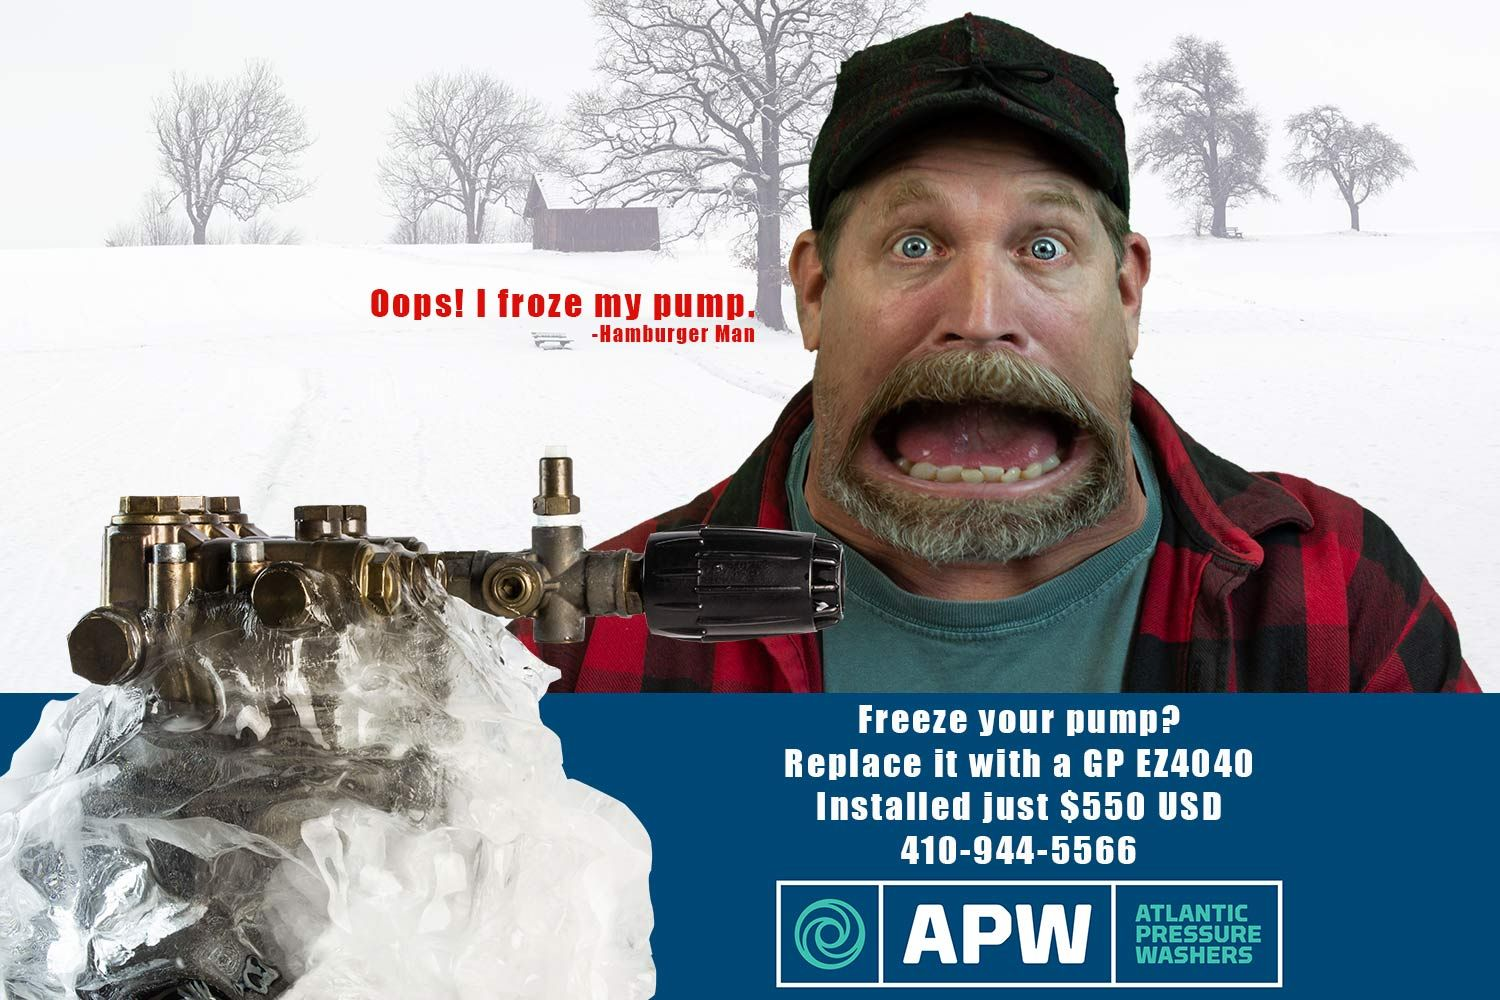 Freeze your pump? Get a replacements pump for just $550 installed!